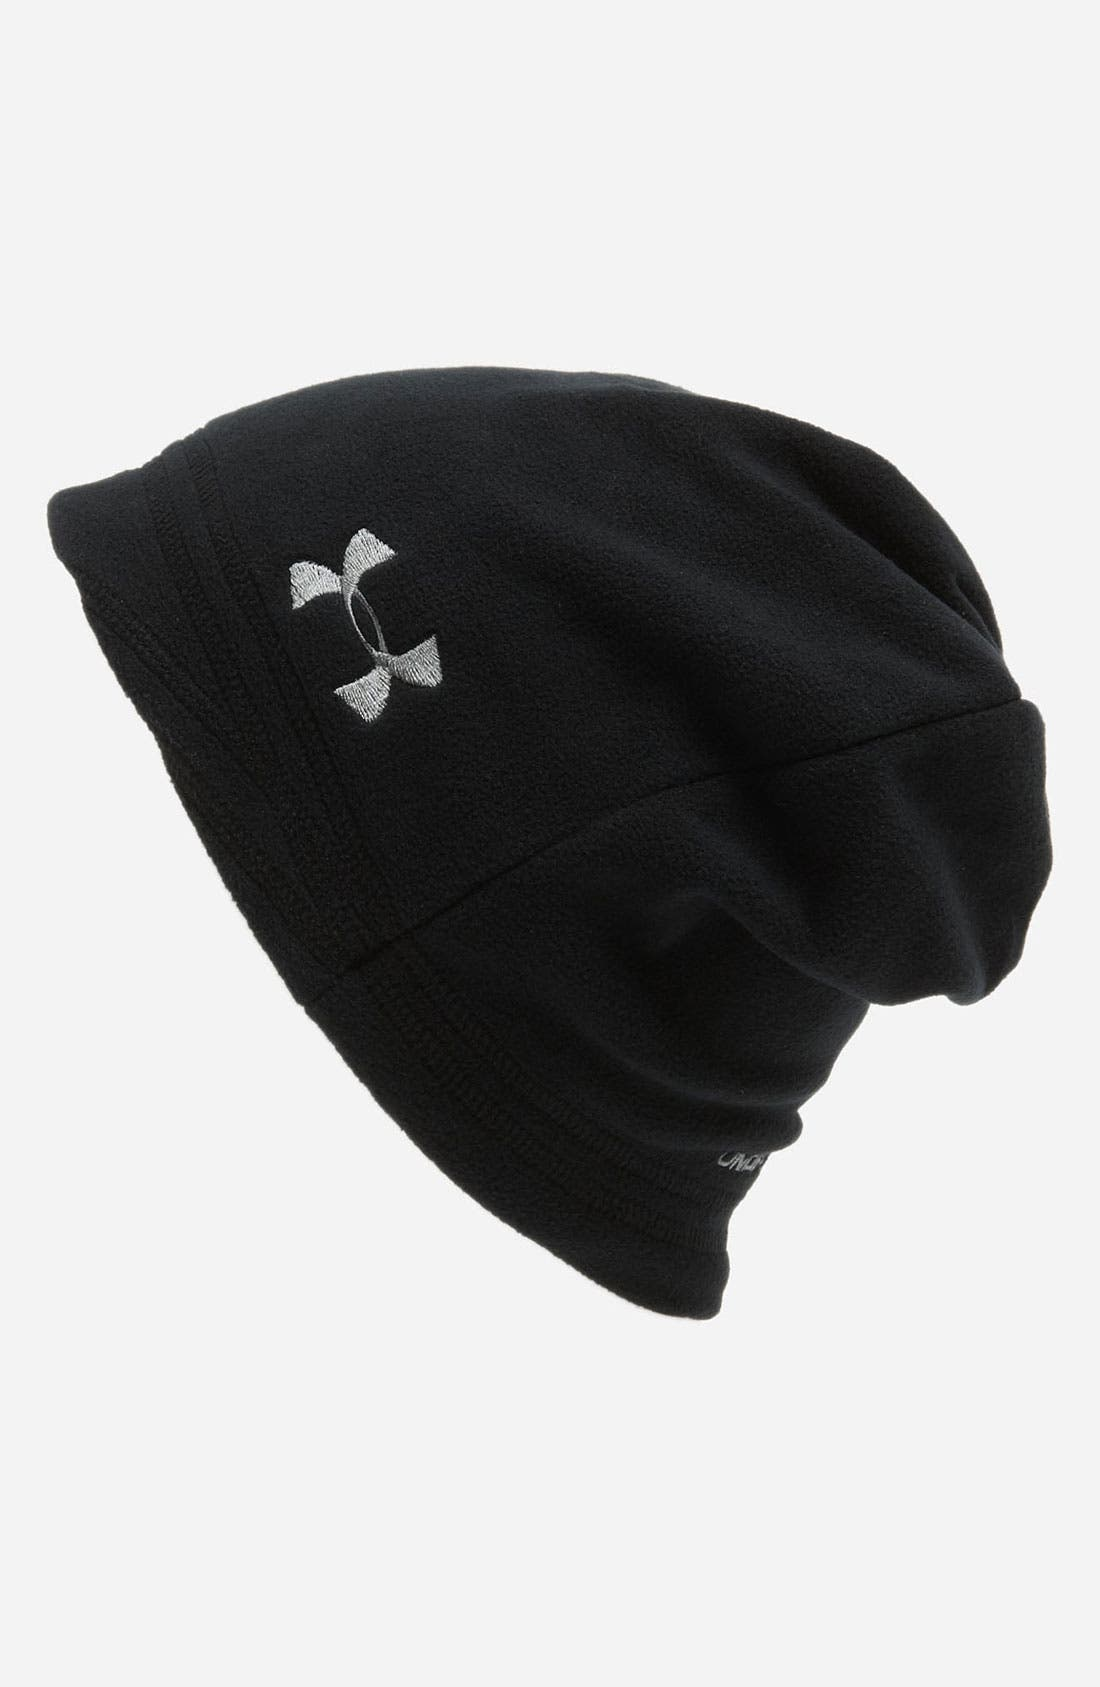 Alternate Image 1 Selected - Under Armour 'Blustery' Beanie